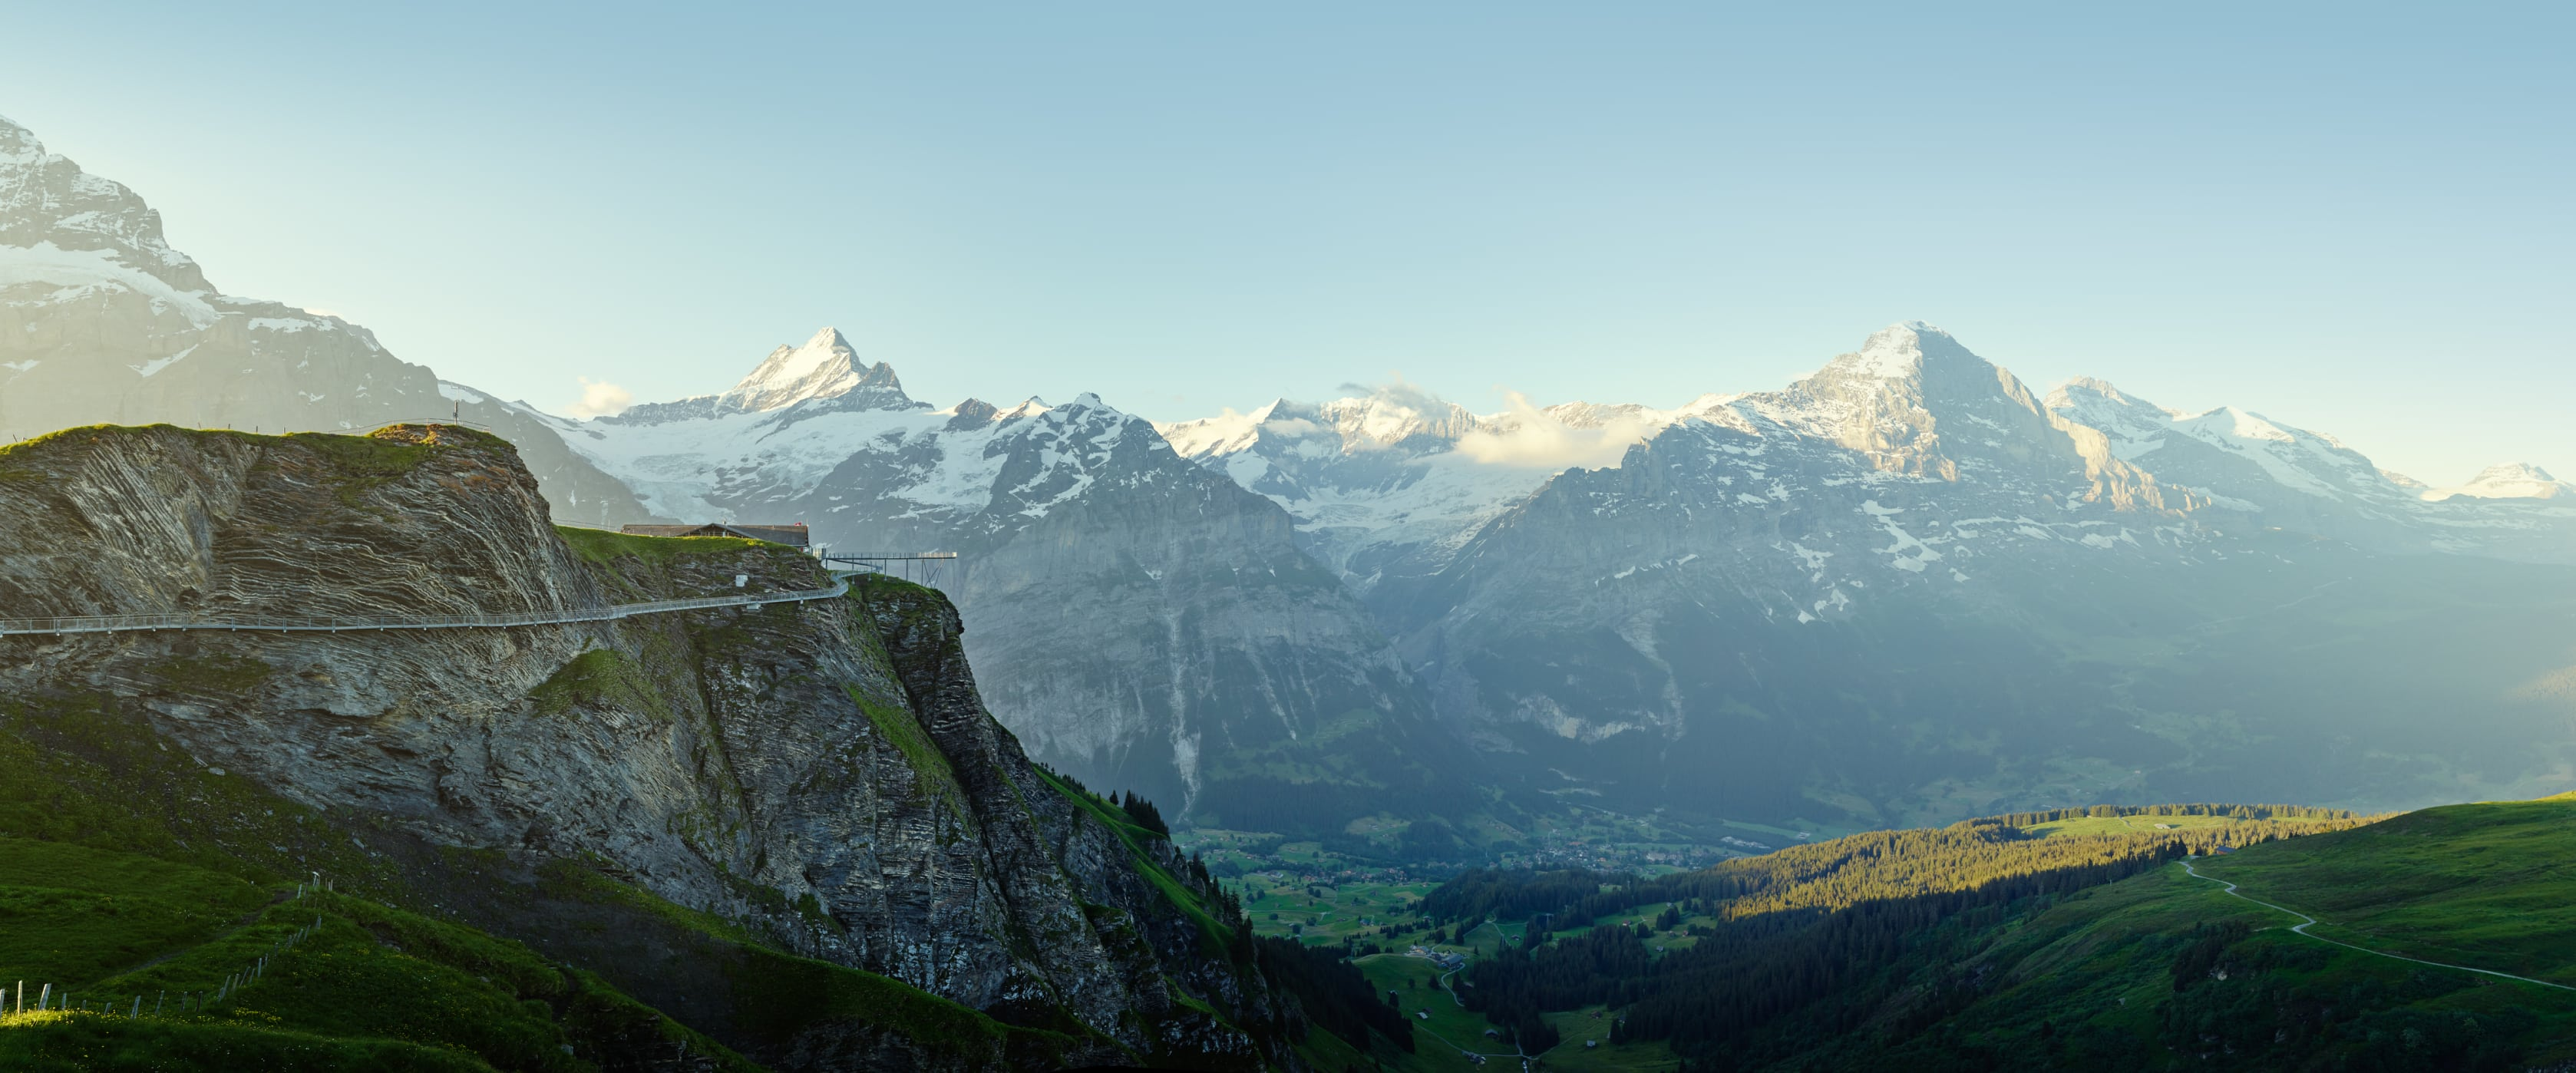 Grindelwald First Sommer Cliff Walk Eiger Moench Jungfrau